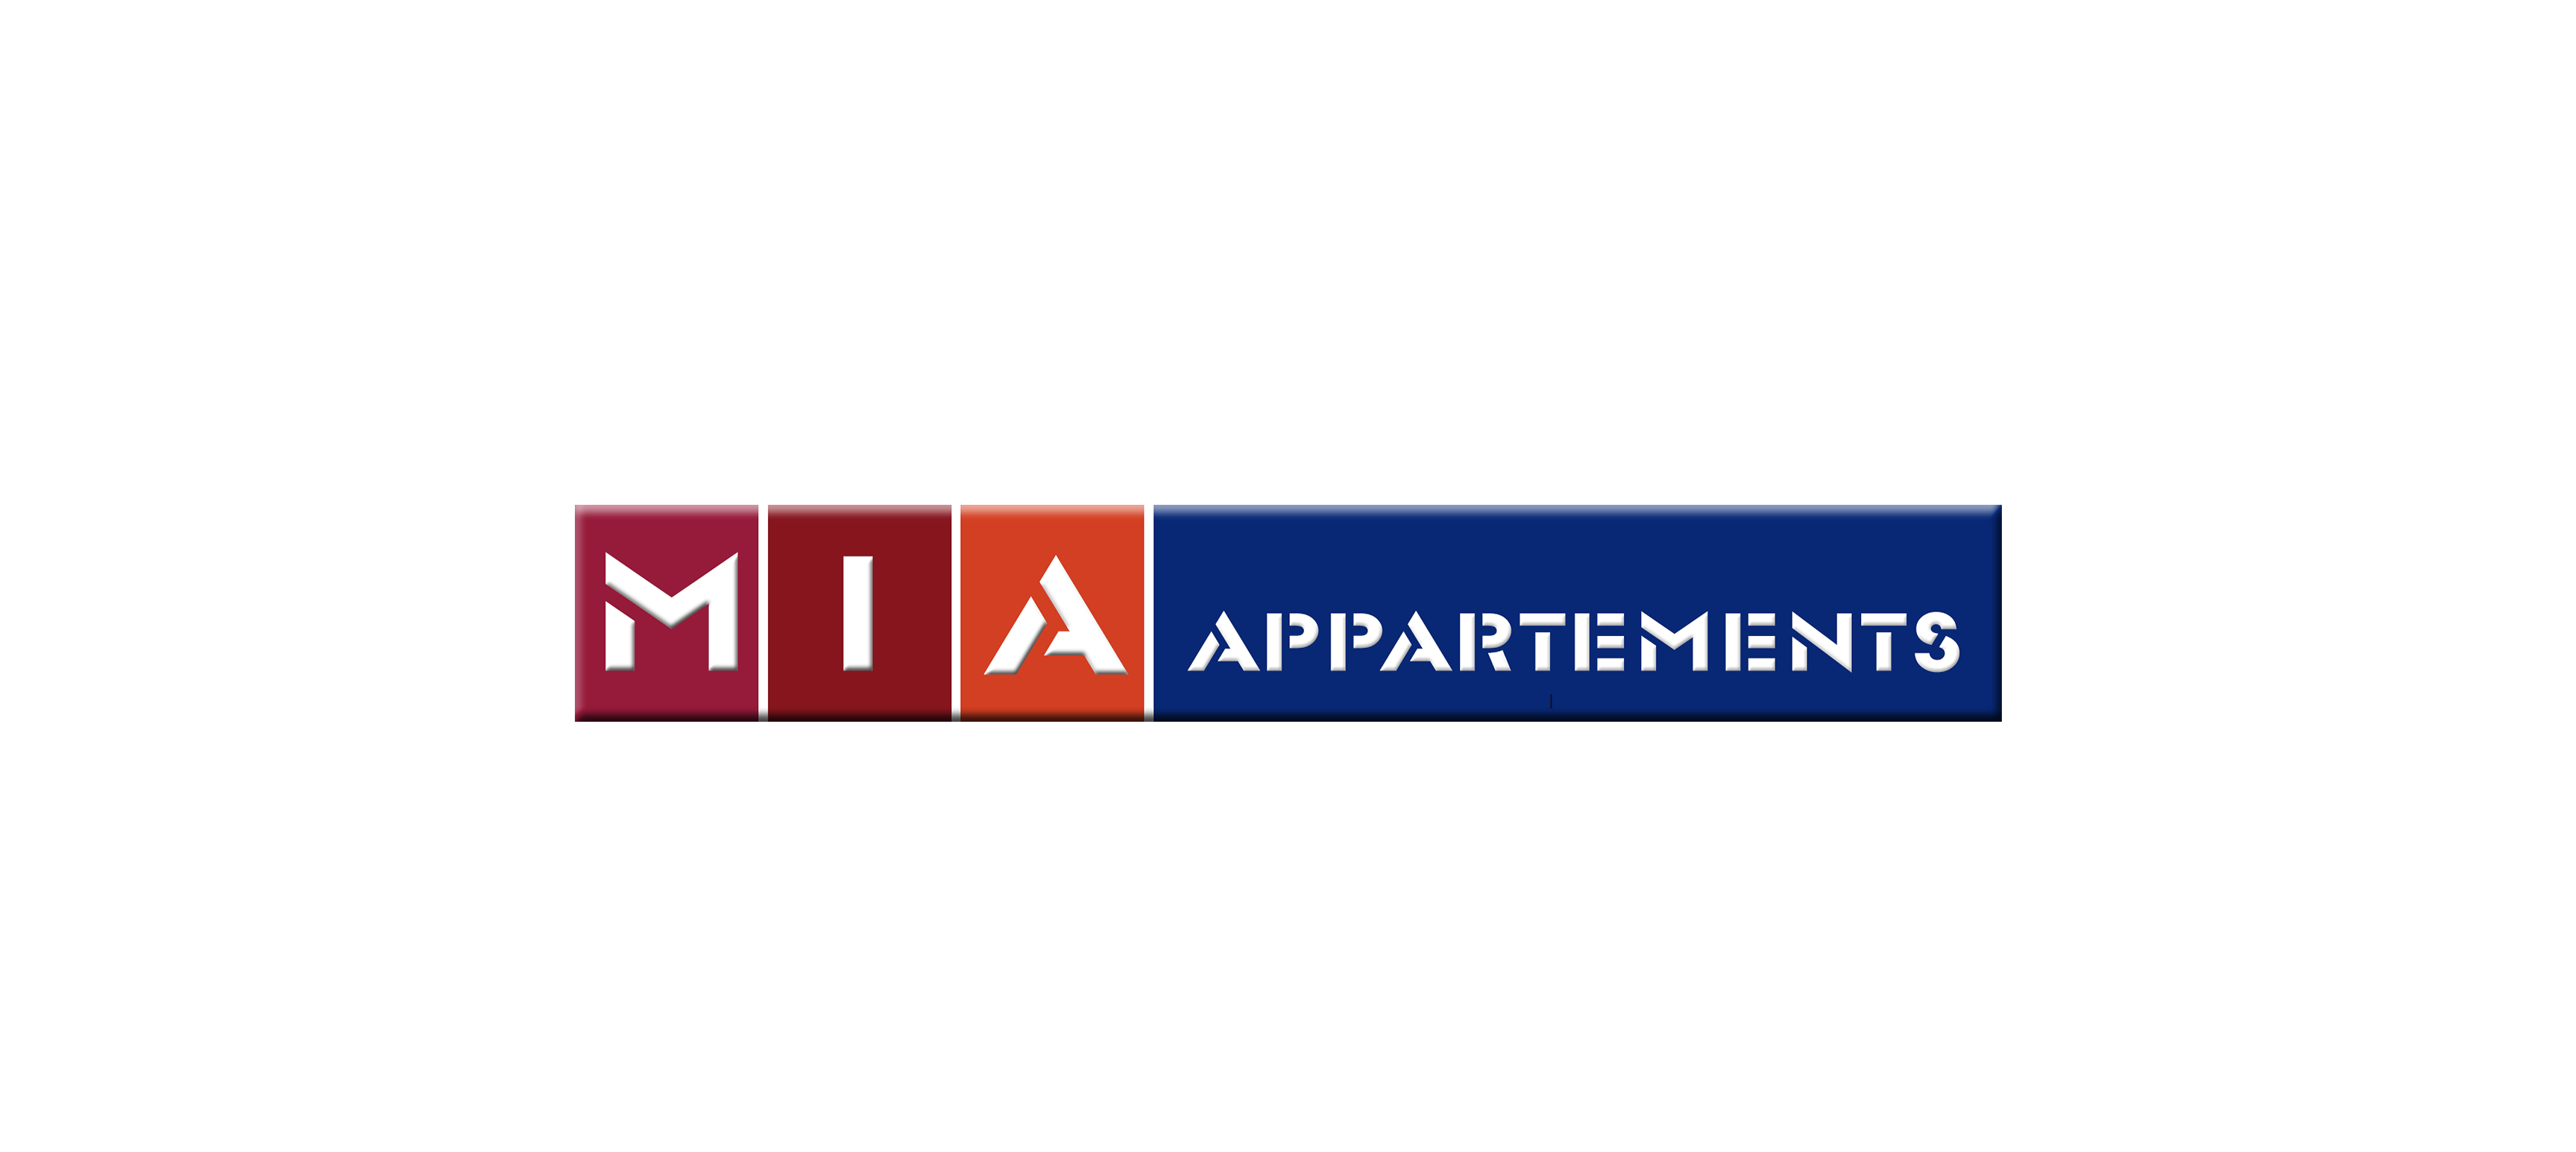 Mia Appartements